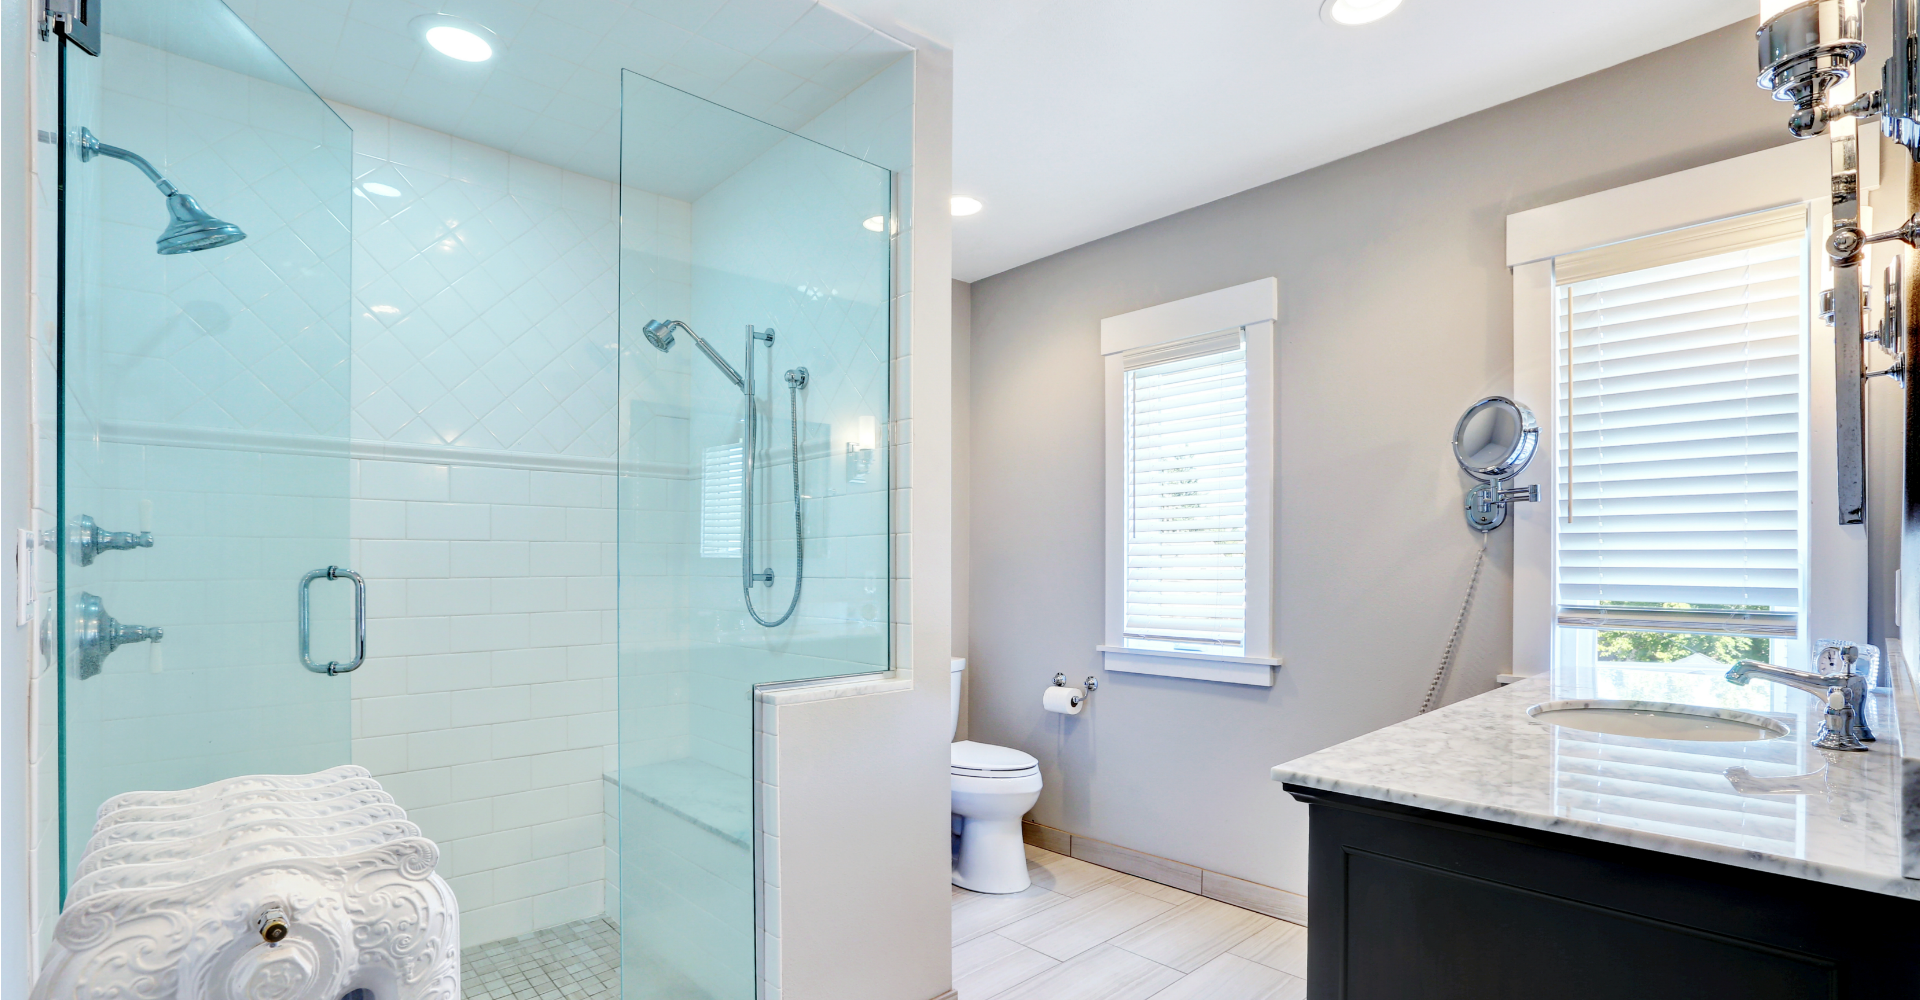 6 Reasons for Low Water Pressure in the Shower - Magnificent Plumbing